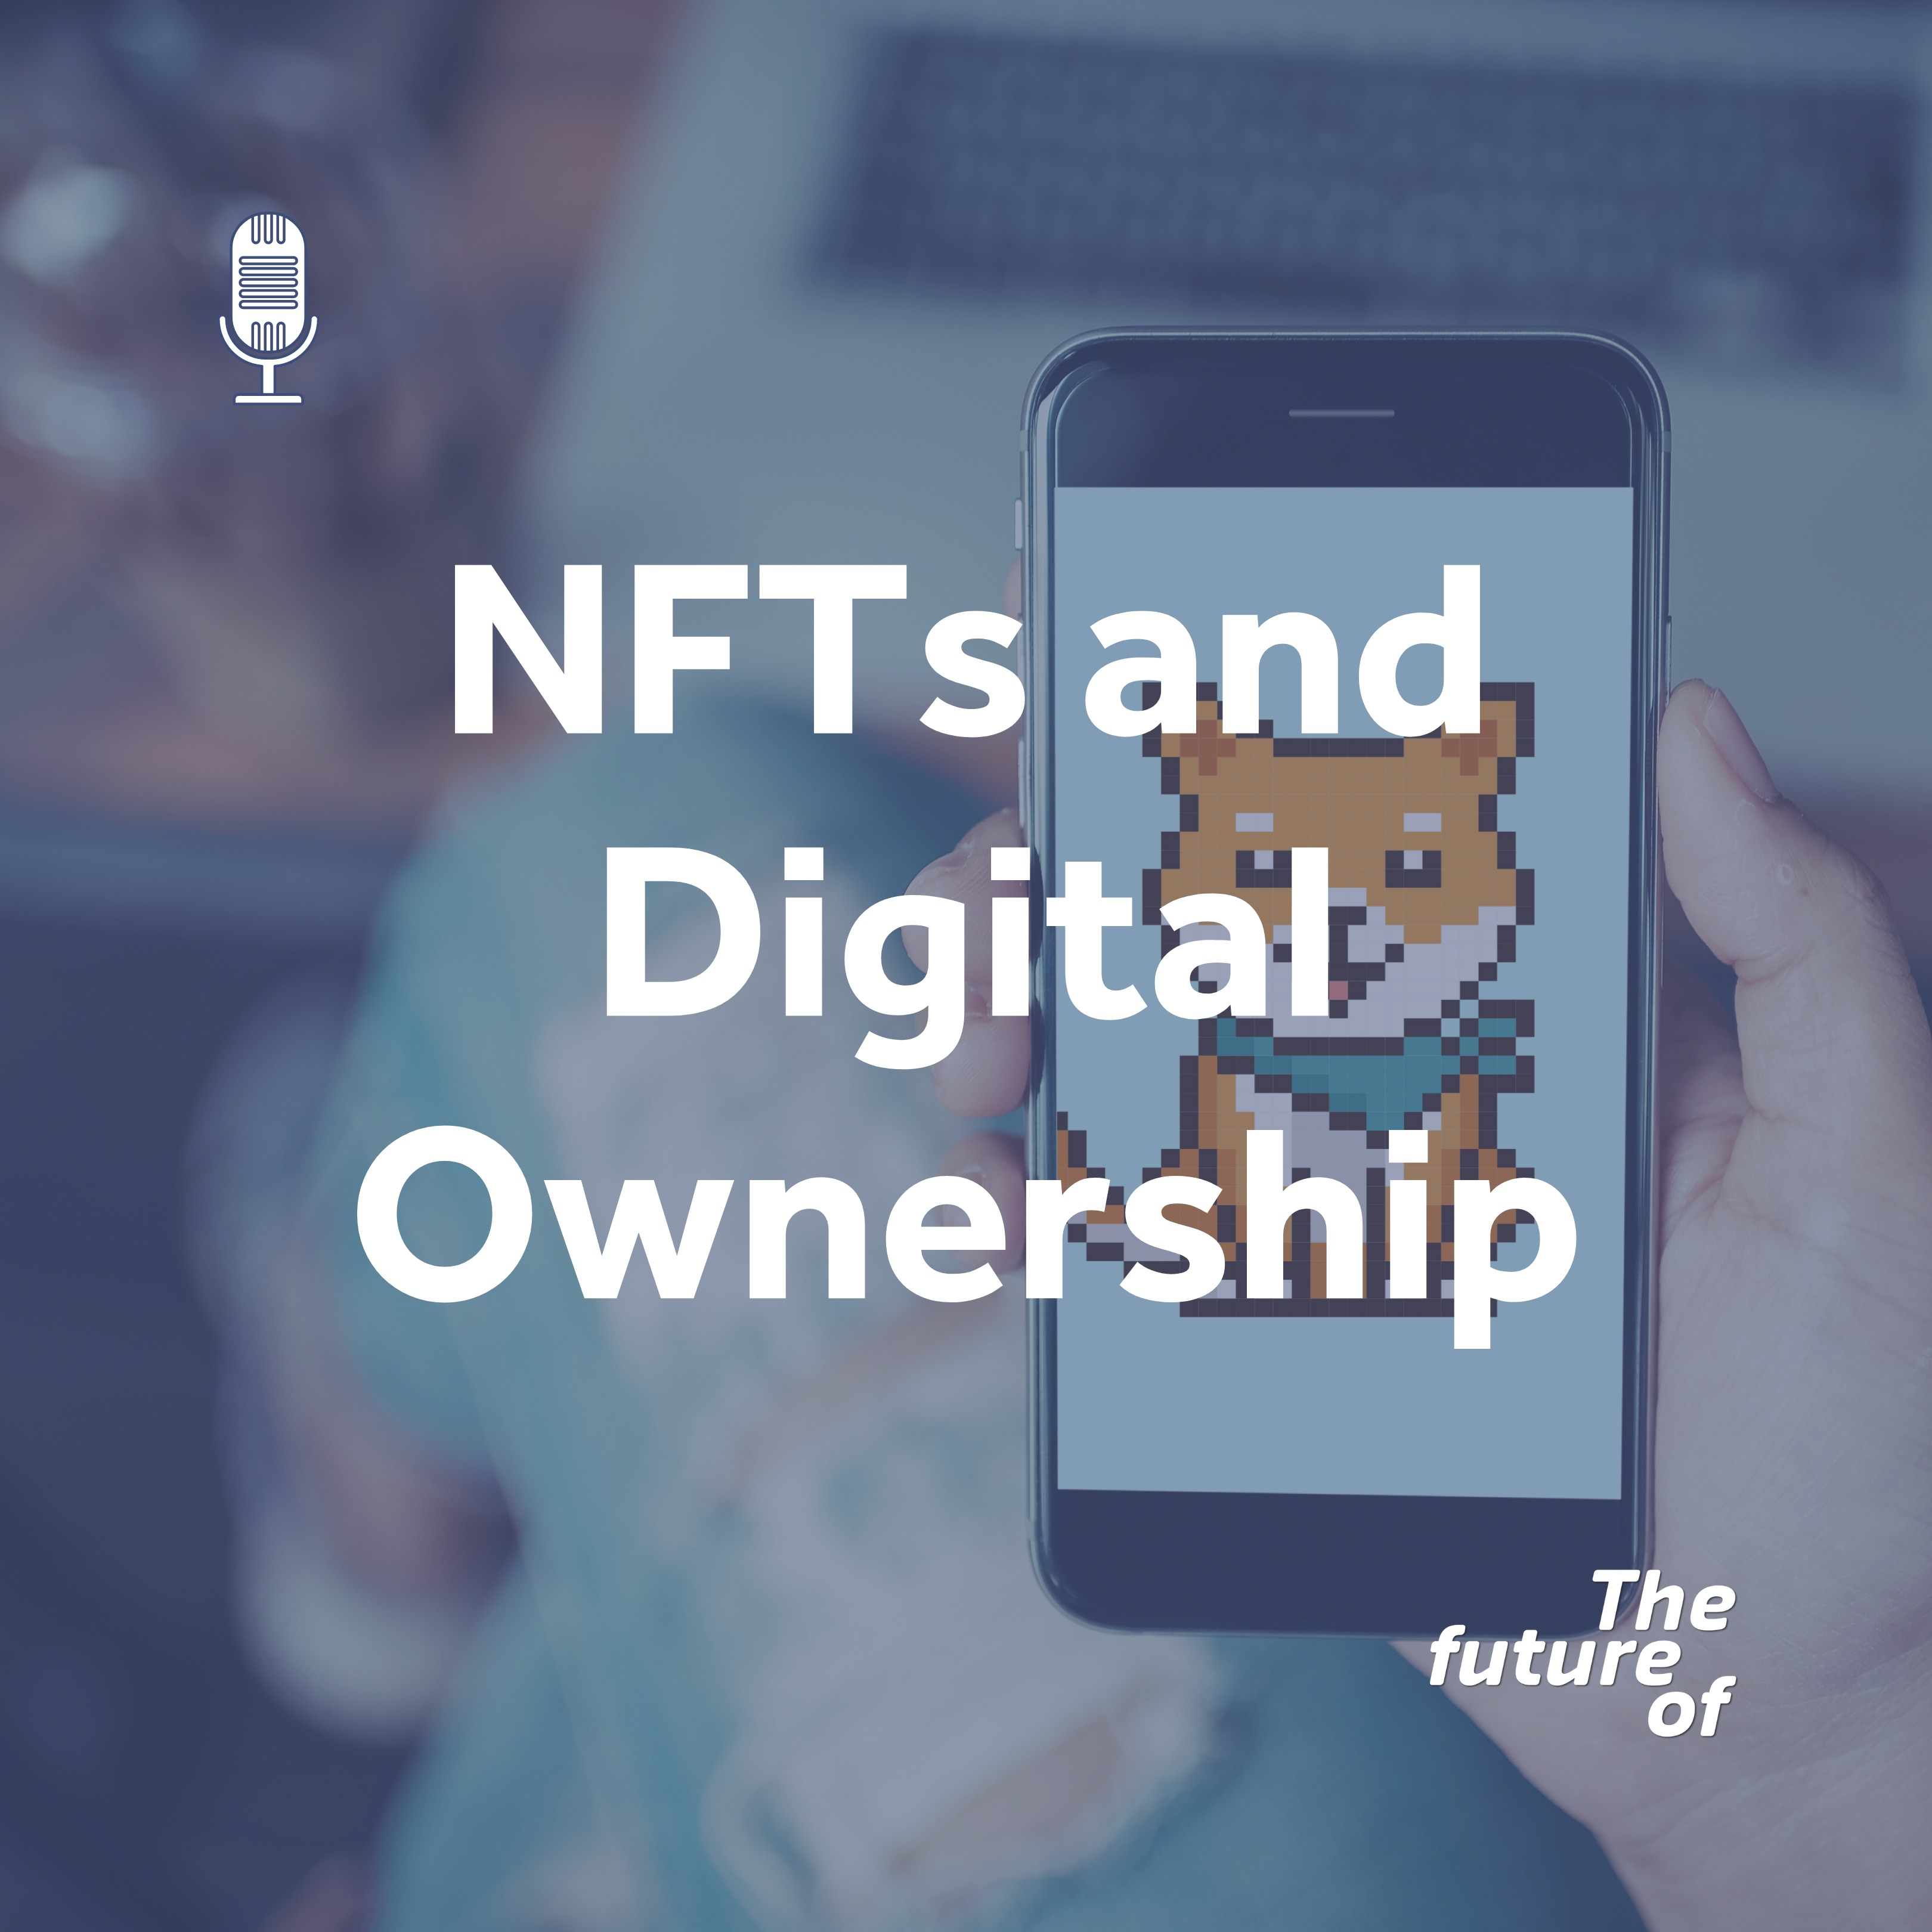 NFTs and Digital Ownership